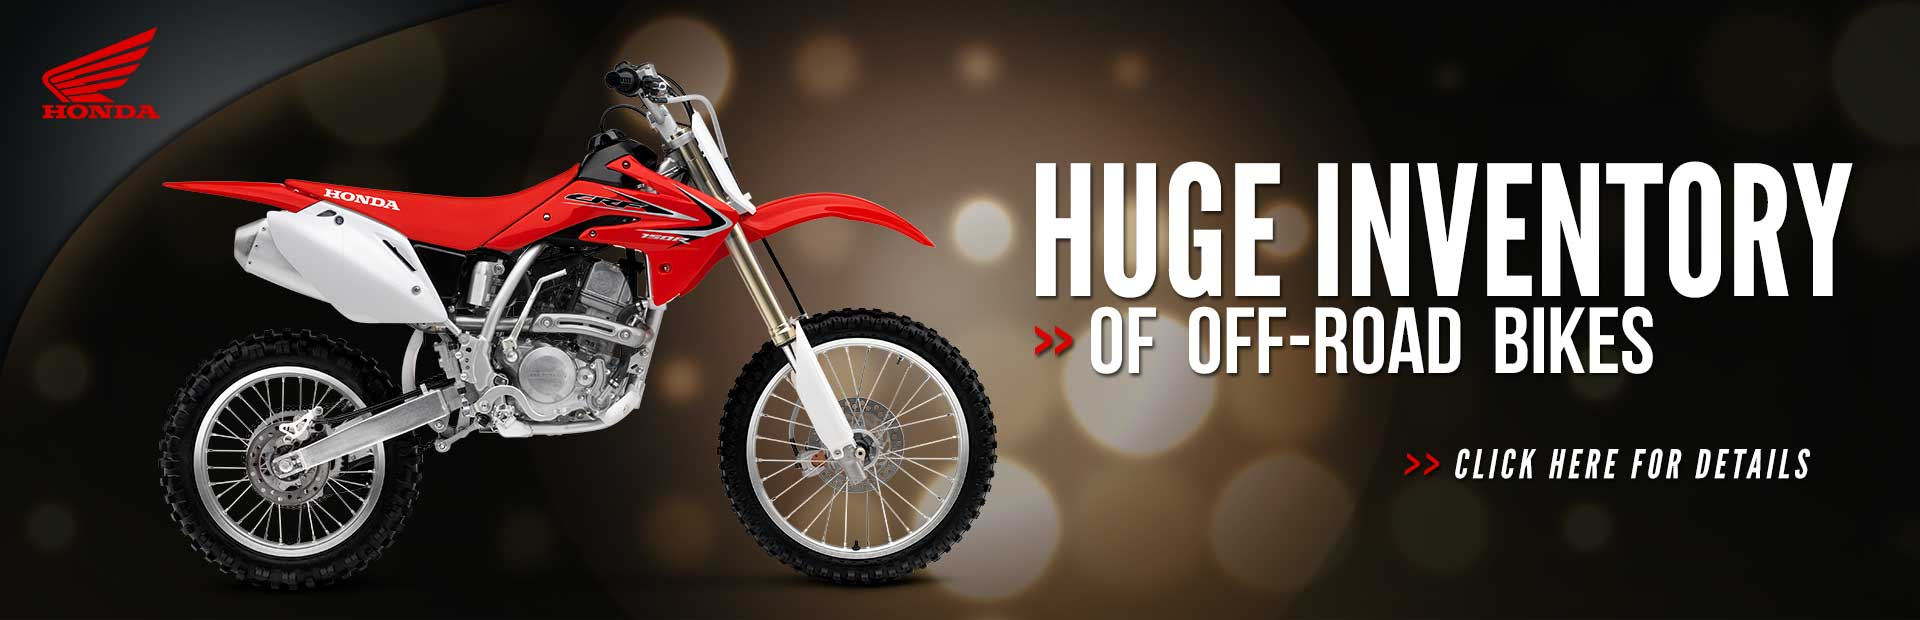 Dirt bikes for sale pittsburgh pa - We Have A Huge Inventory Of Honda Off Road Bikes